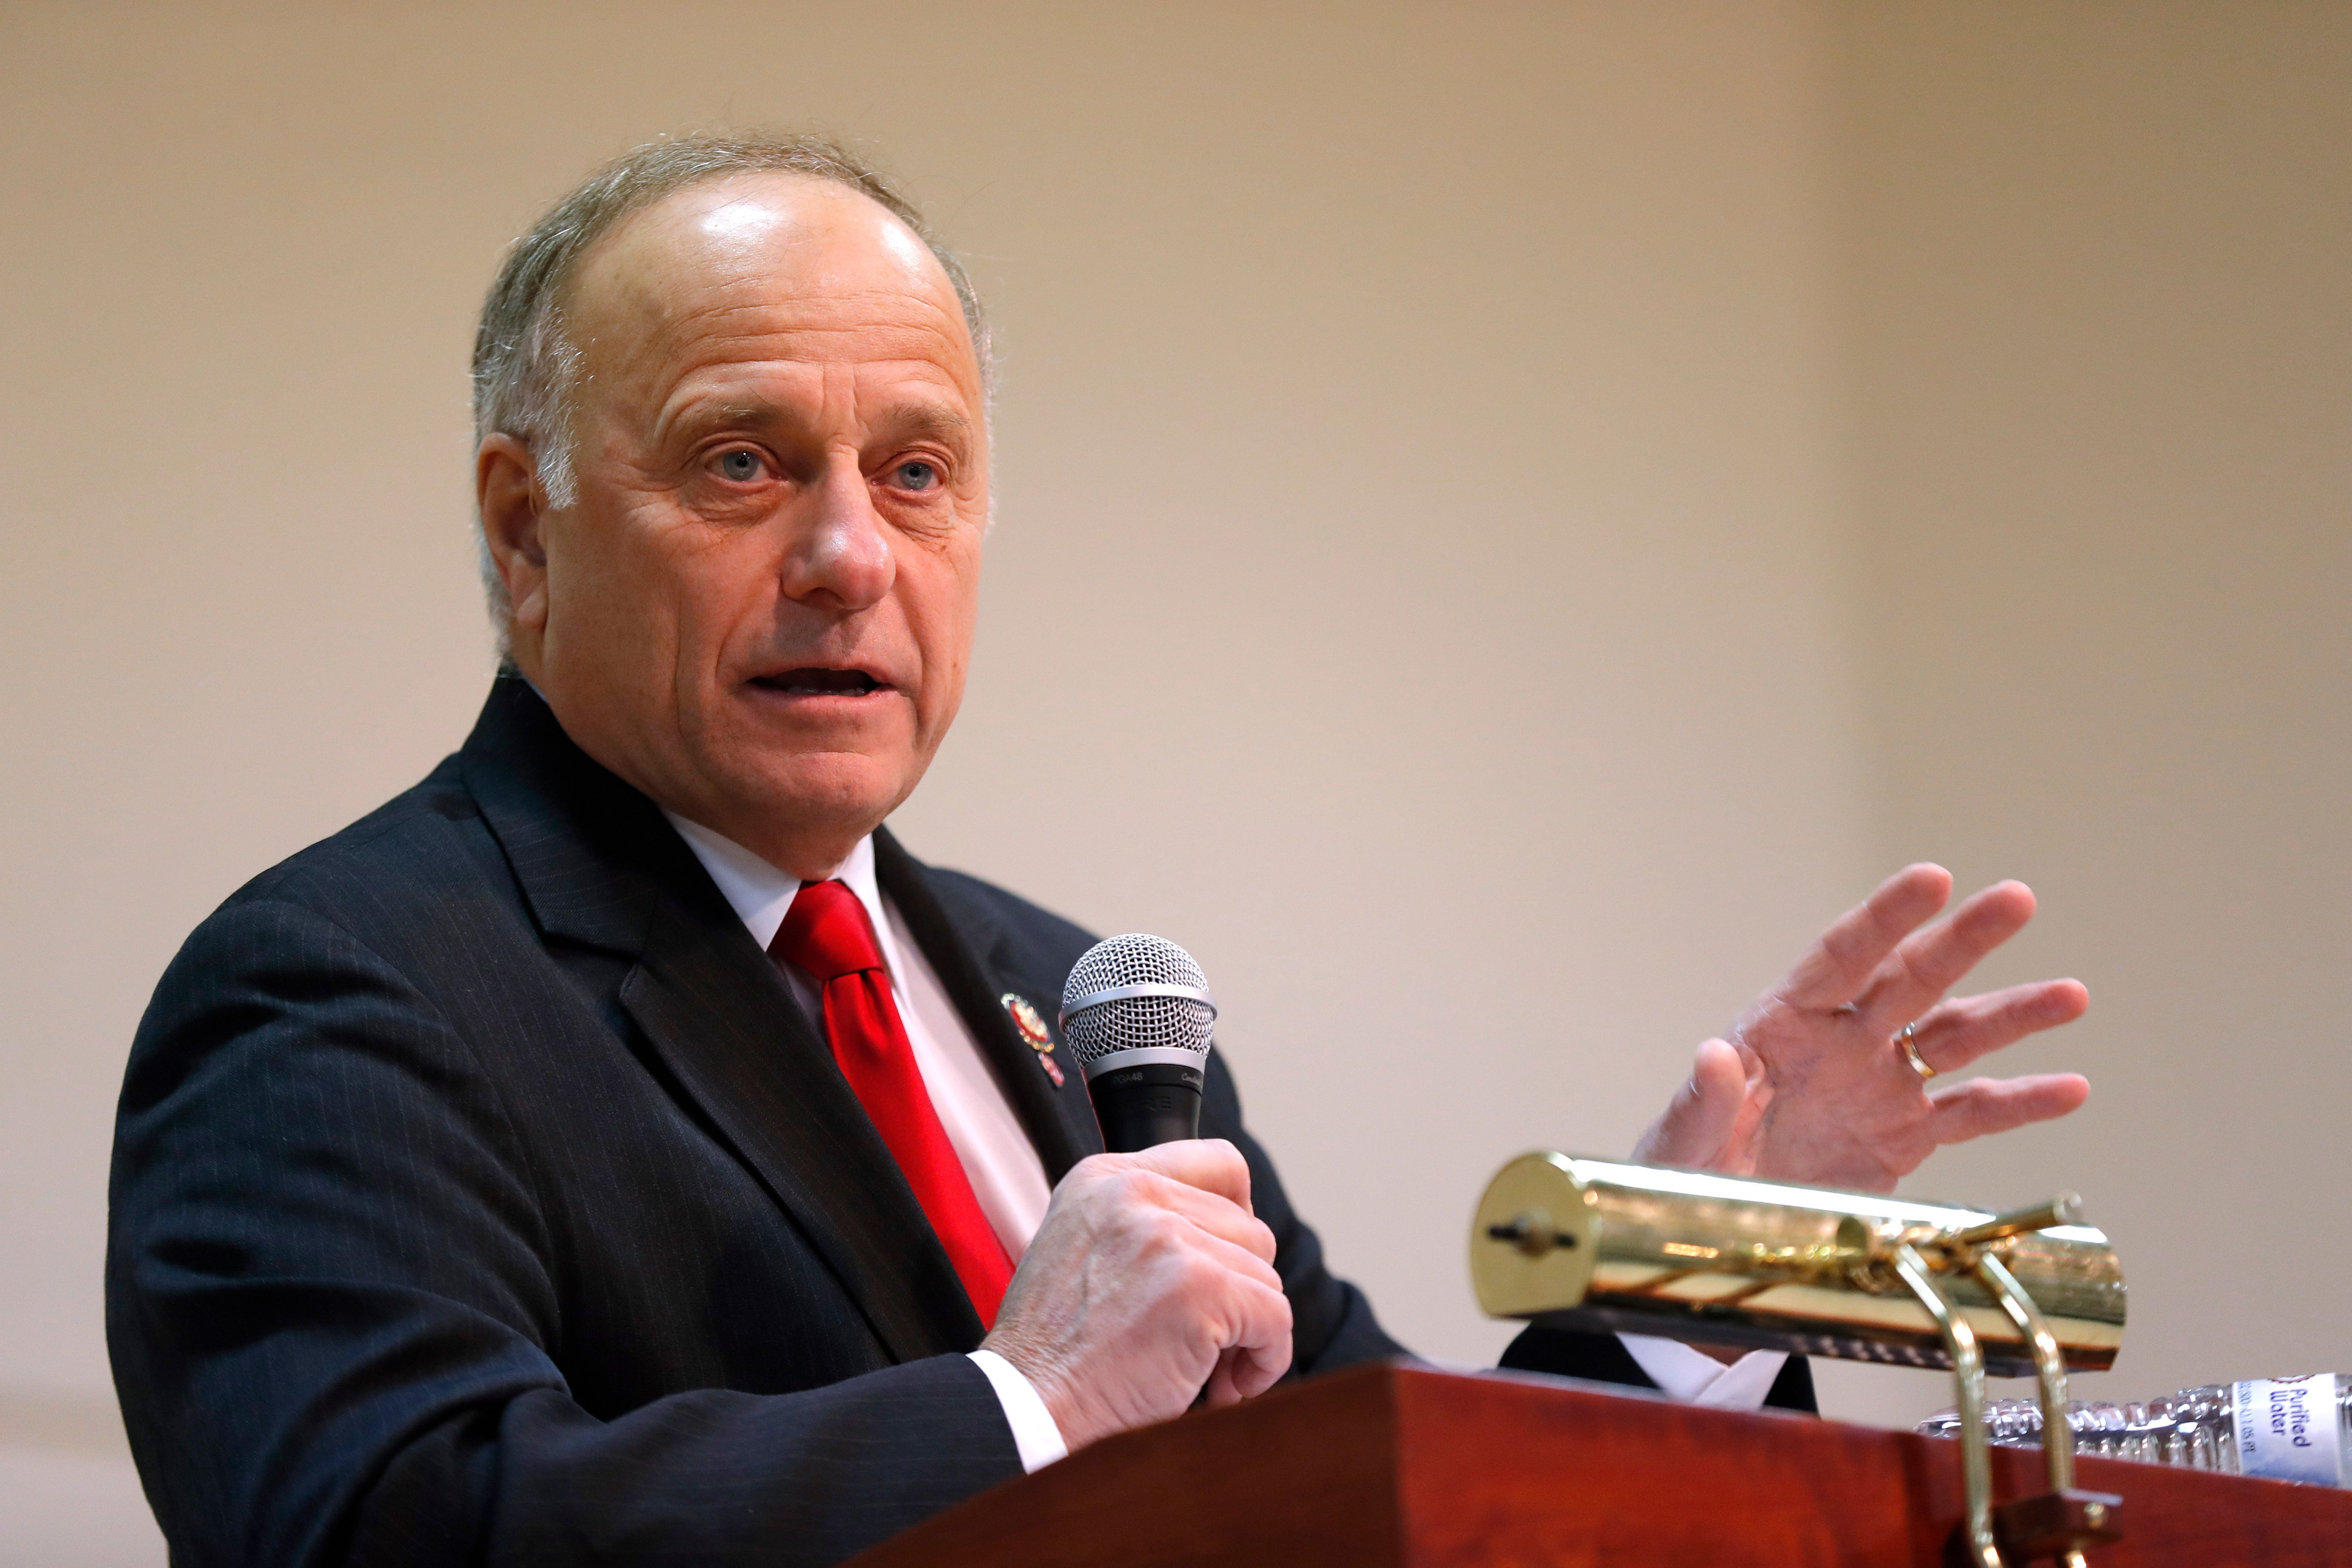 U.S. Rep. Steve King, R-Iowa, speaks during a town hall meeting, Saturday, Jan. 26, 2019, in Primghar, Iowa. This is the first of 39 town hall meetings the Iowa congressman plans to hold following his nearly unanimous rebuke by the U.S. House over racist comments he made during a newspaper interview earlier in the month. (AP Photo/Charlie Neibergall)